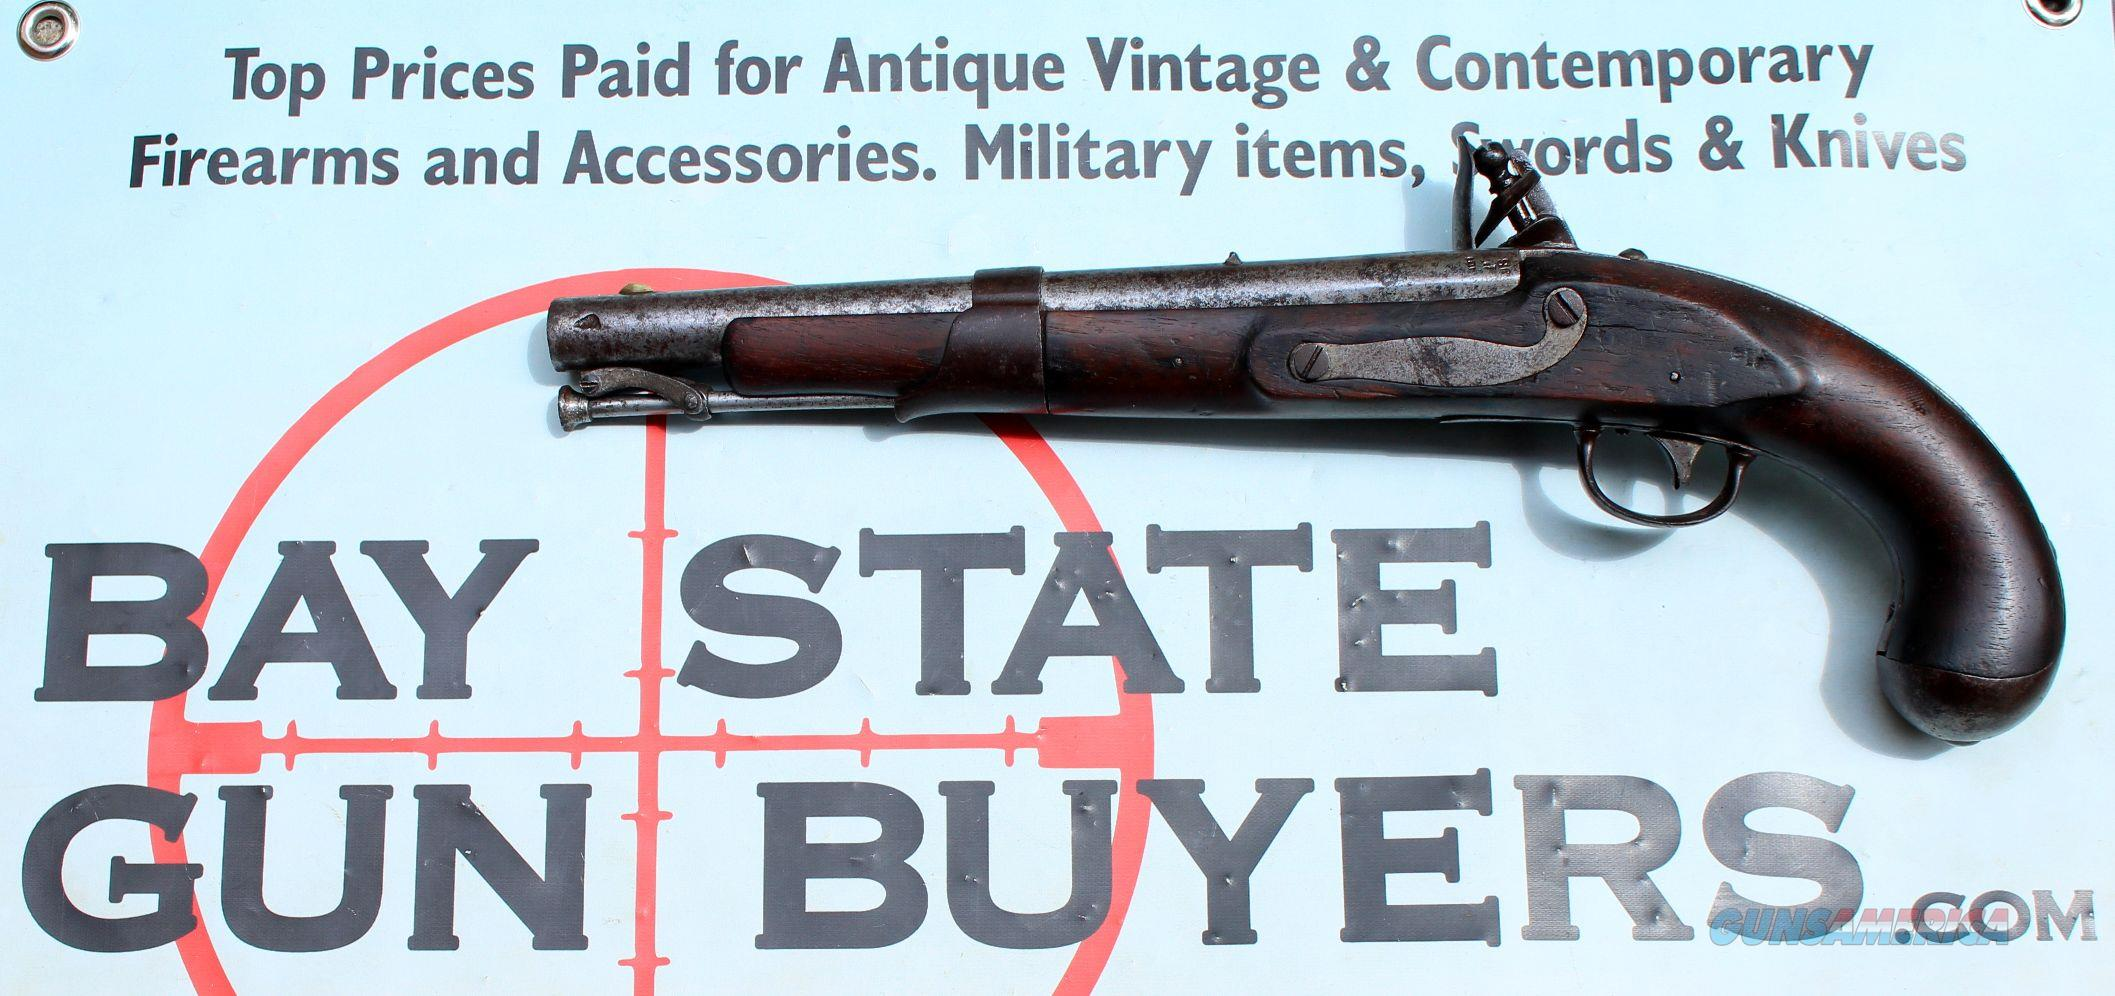 U.S. Model 1819 SIMEON NORTH Flintlock Pistol dated 1822 - .54 Caliber - ORIGINAL MARTIAL PISTOL  Guns > Pistols > Antique (Pre-1899) Pistols - Perc. Misc.